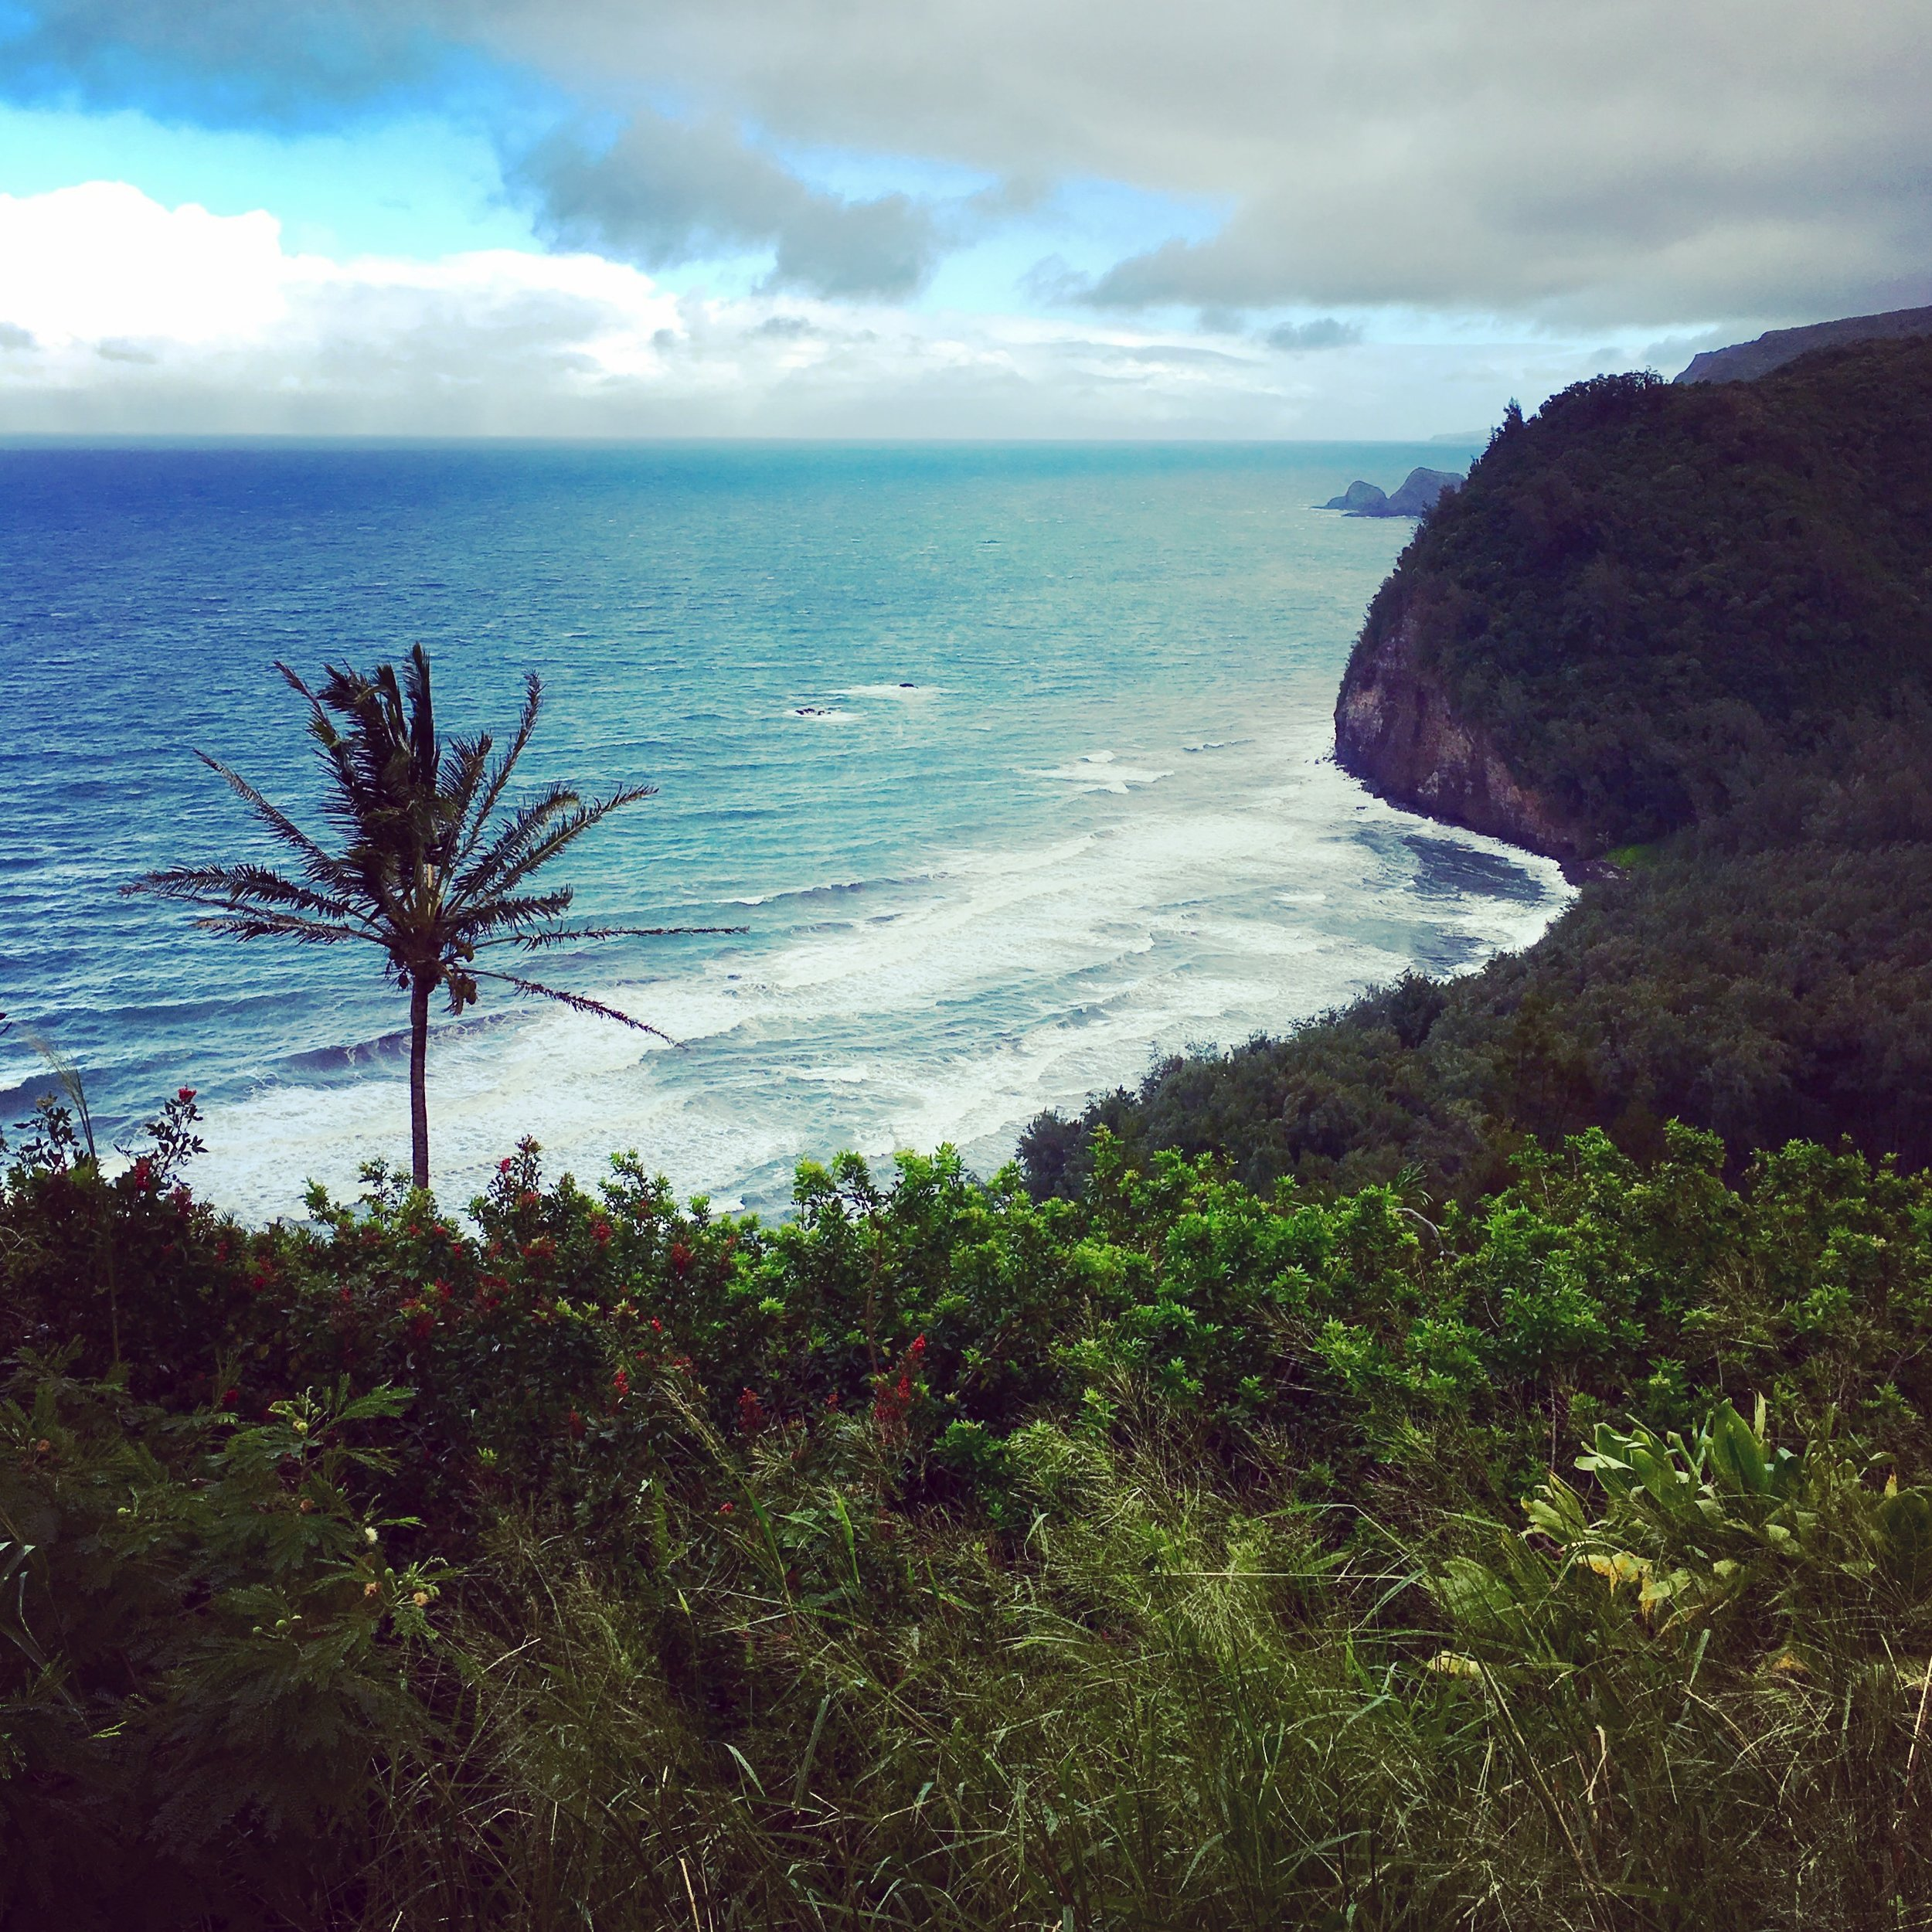 Pololu Valley Lookout , a must-do viewpoint and hike overlooking the island's northeastern coastline